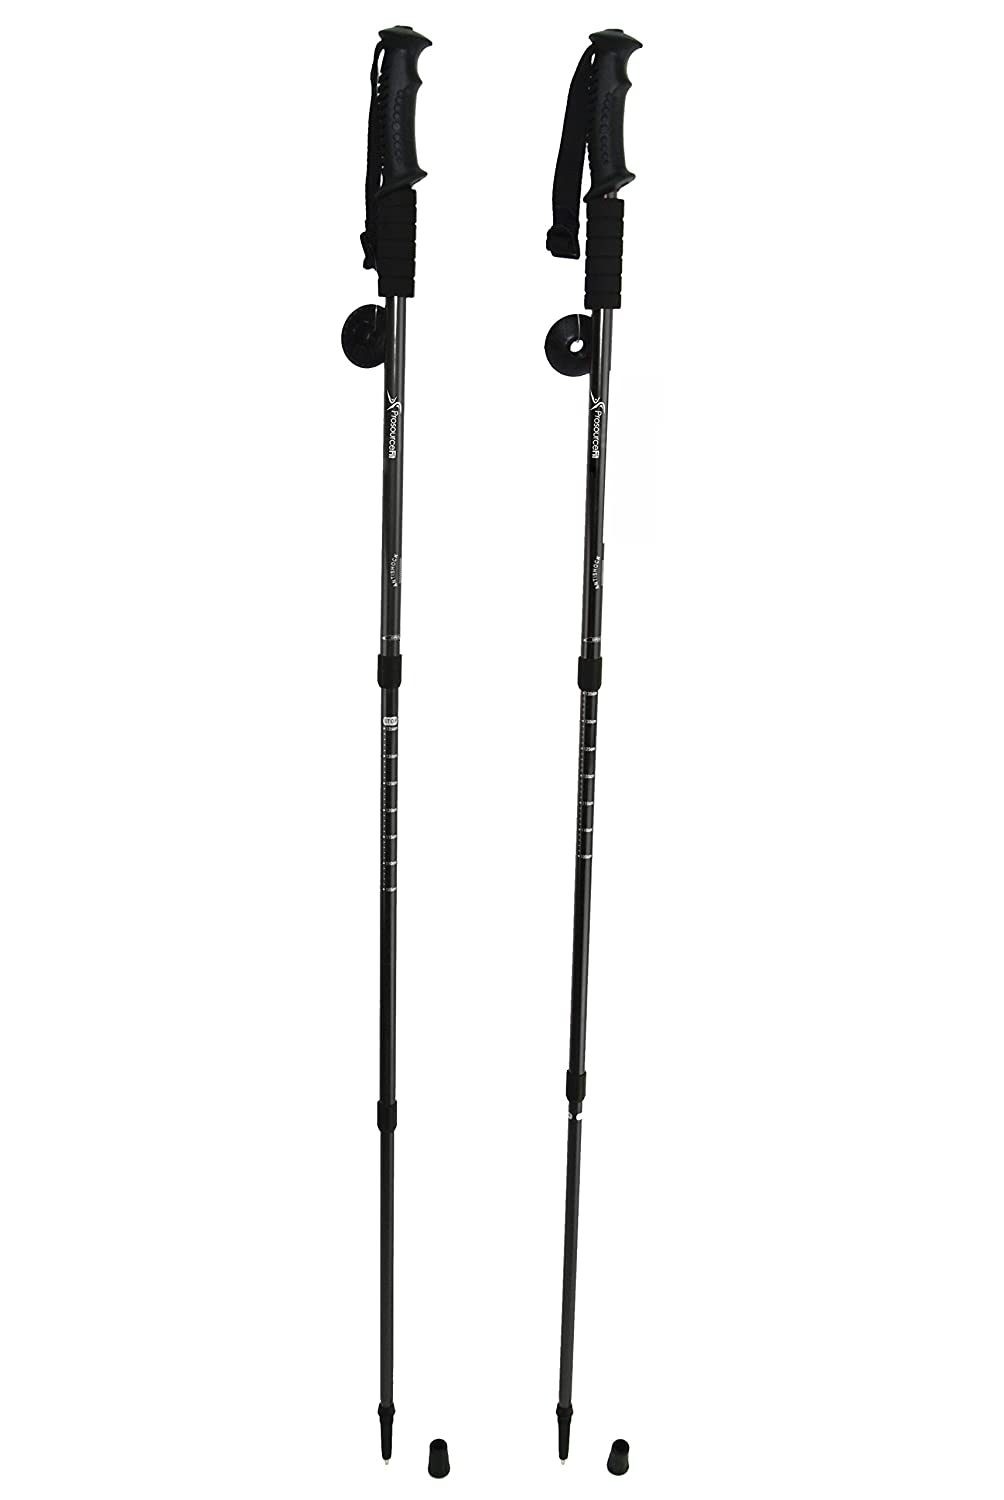 Prosource Fit Anti-Shock Trekking//Hiking//Walking Poles Adjustable Set of 2 Aluminum Telescopic Poles with Compass and Wrist Strap Black ProSource Discounts Inc ps-1060-trk-black